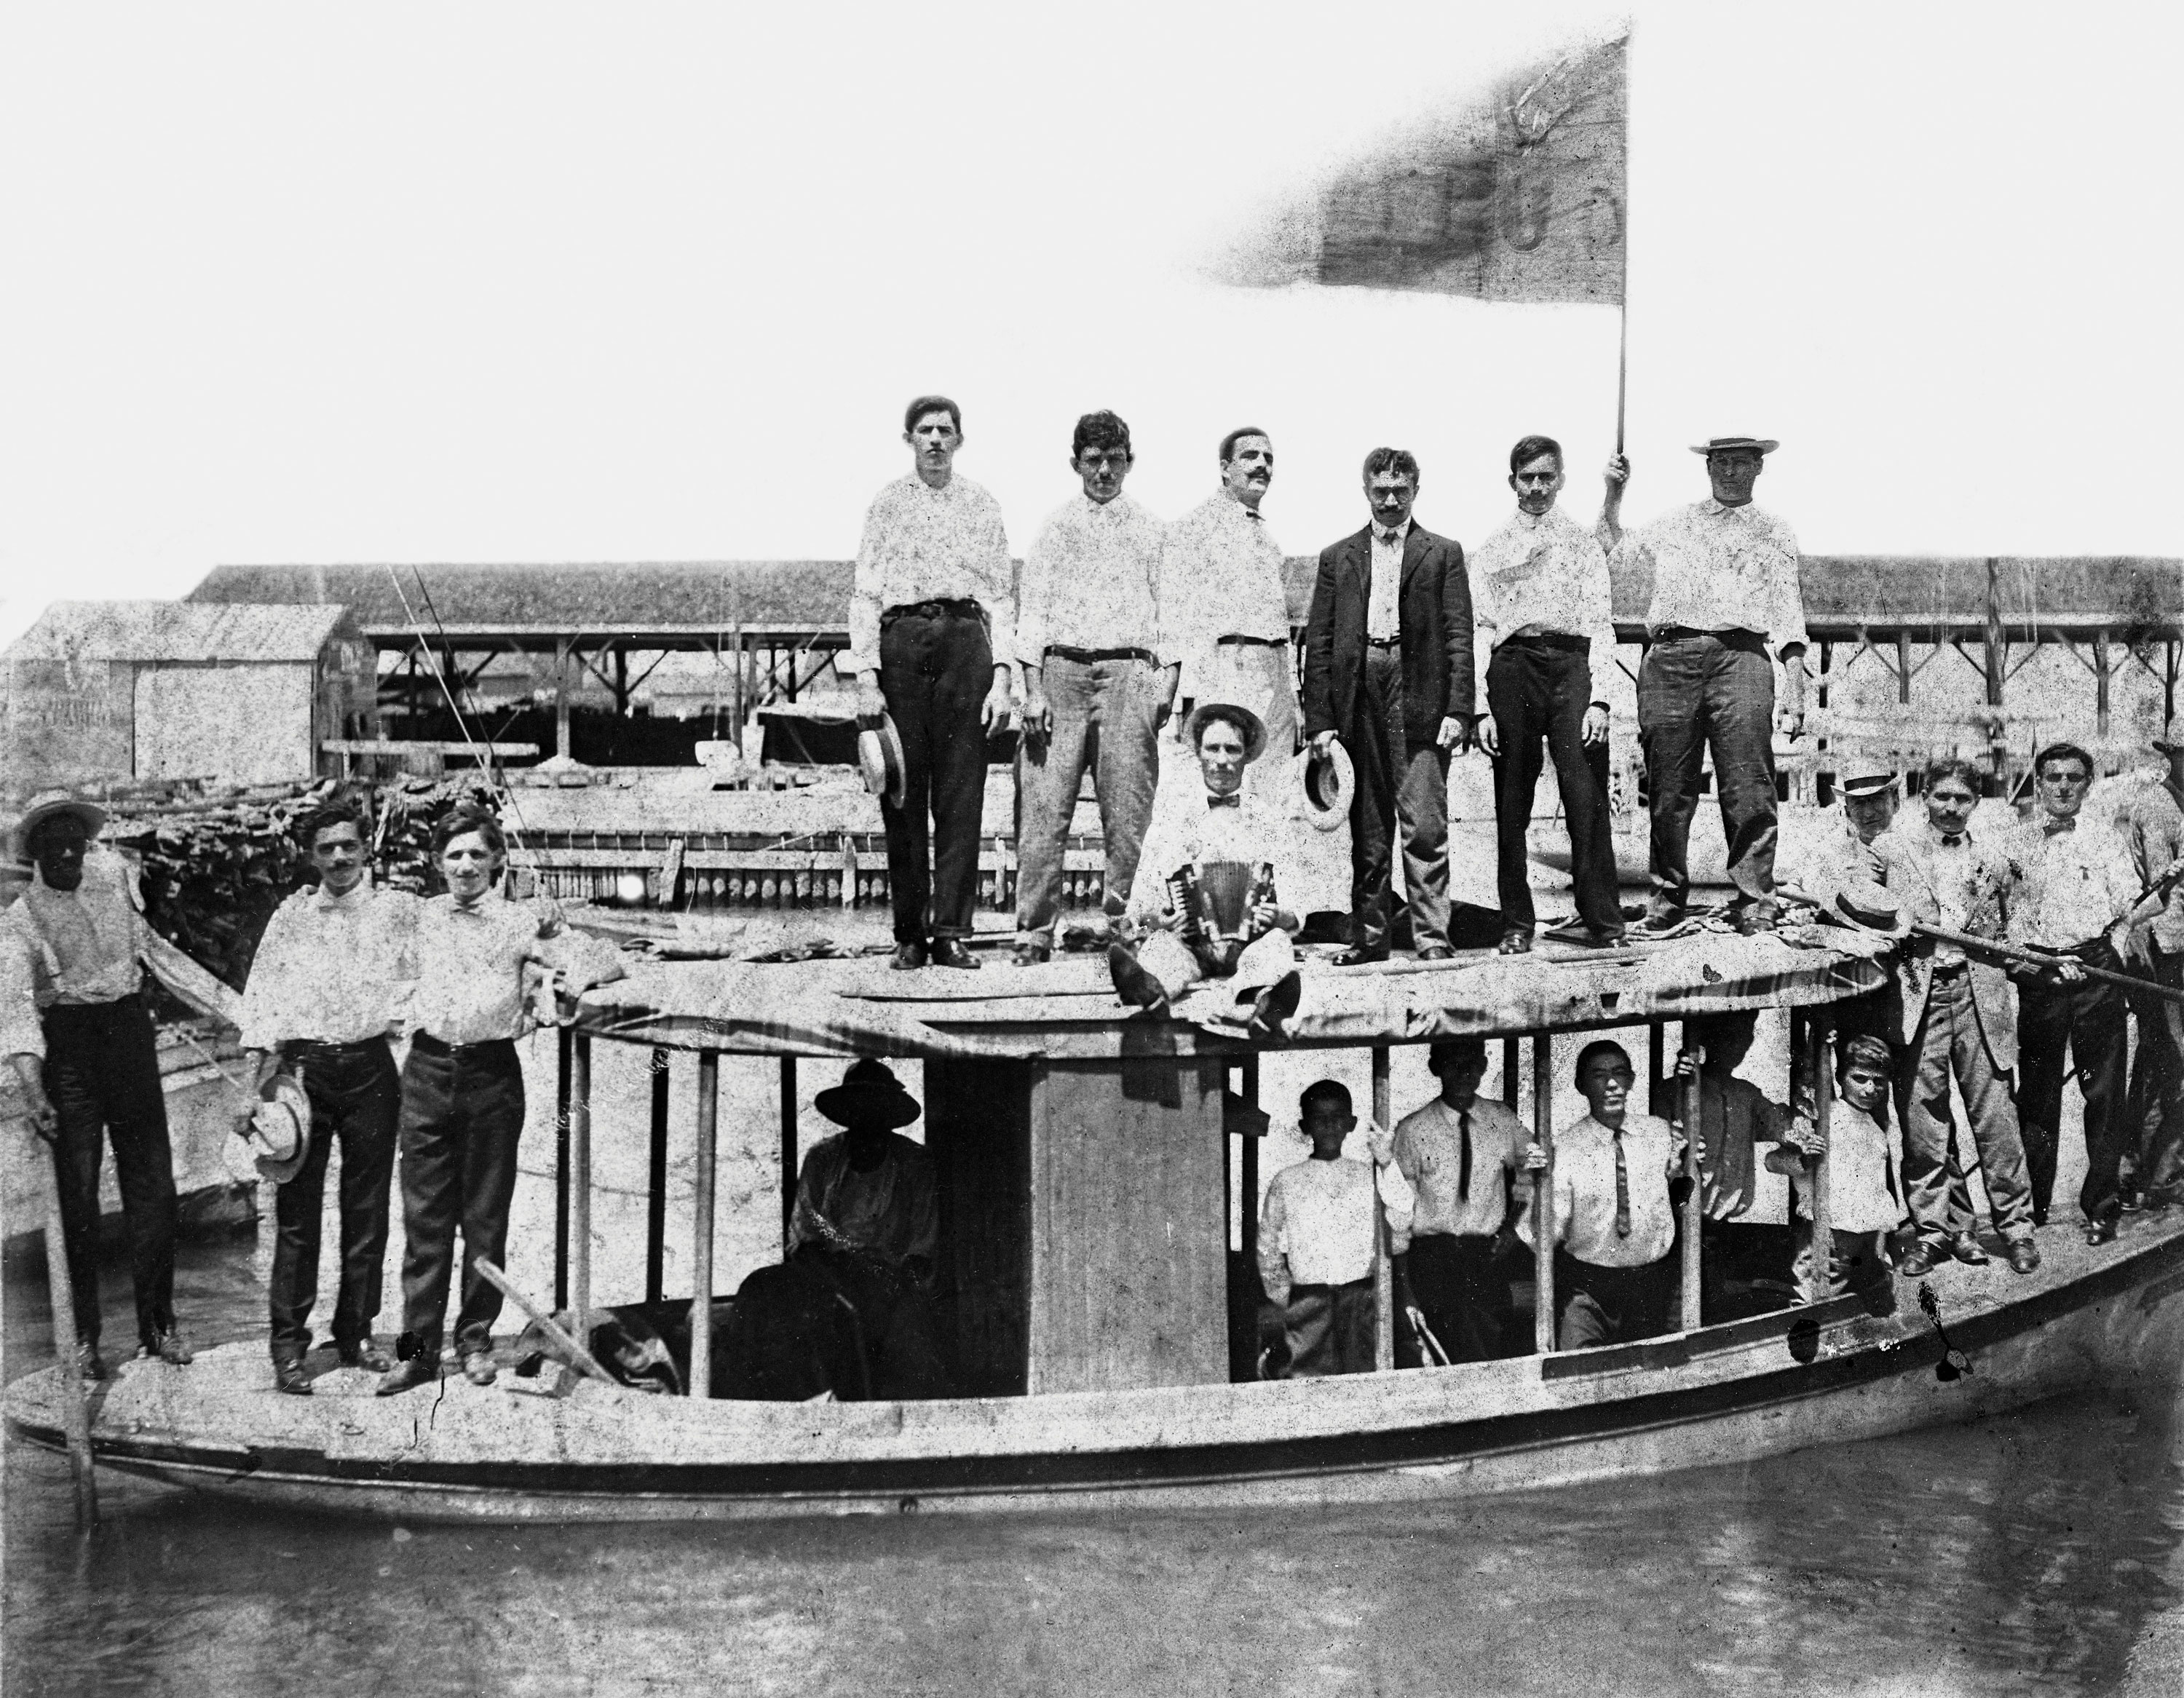 Cover image for Arlo Haskell's nonfiction book The Jews of Key West: Smugglers, Cigar Makers, and Revolutionaries (1823-1969), published in November 2017 by Sand Paper Press. Image shows the Key West, Florida, Young Men's Hebrew Association on a boat outing in 1908. (Black & white photonegative, 4 x 5 in. State Archives of Florida, Florida Memory.)